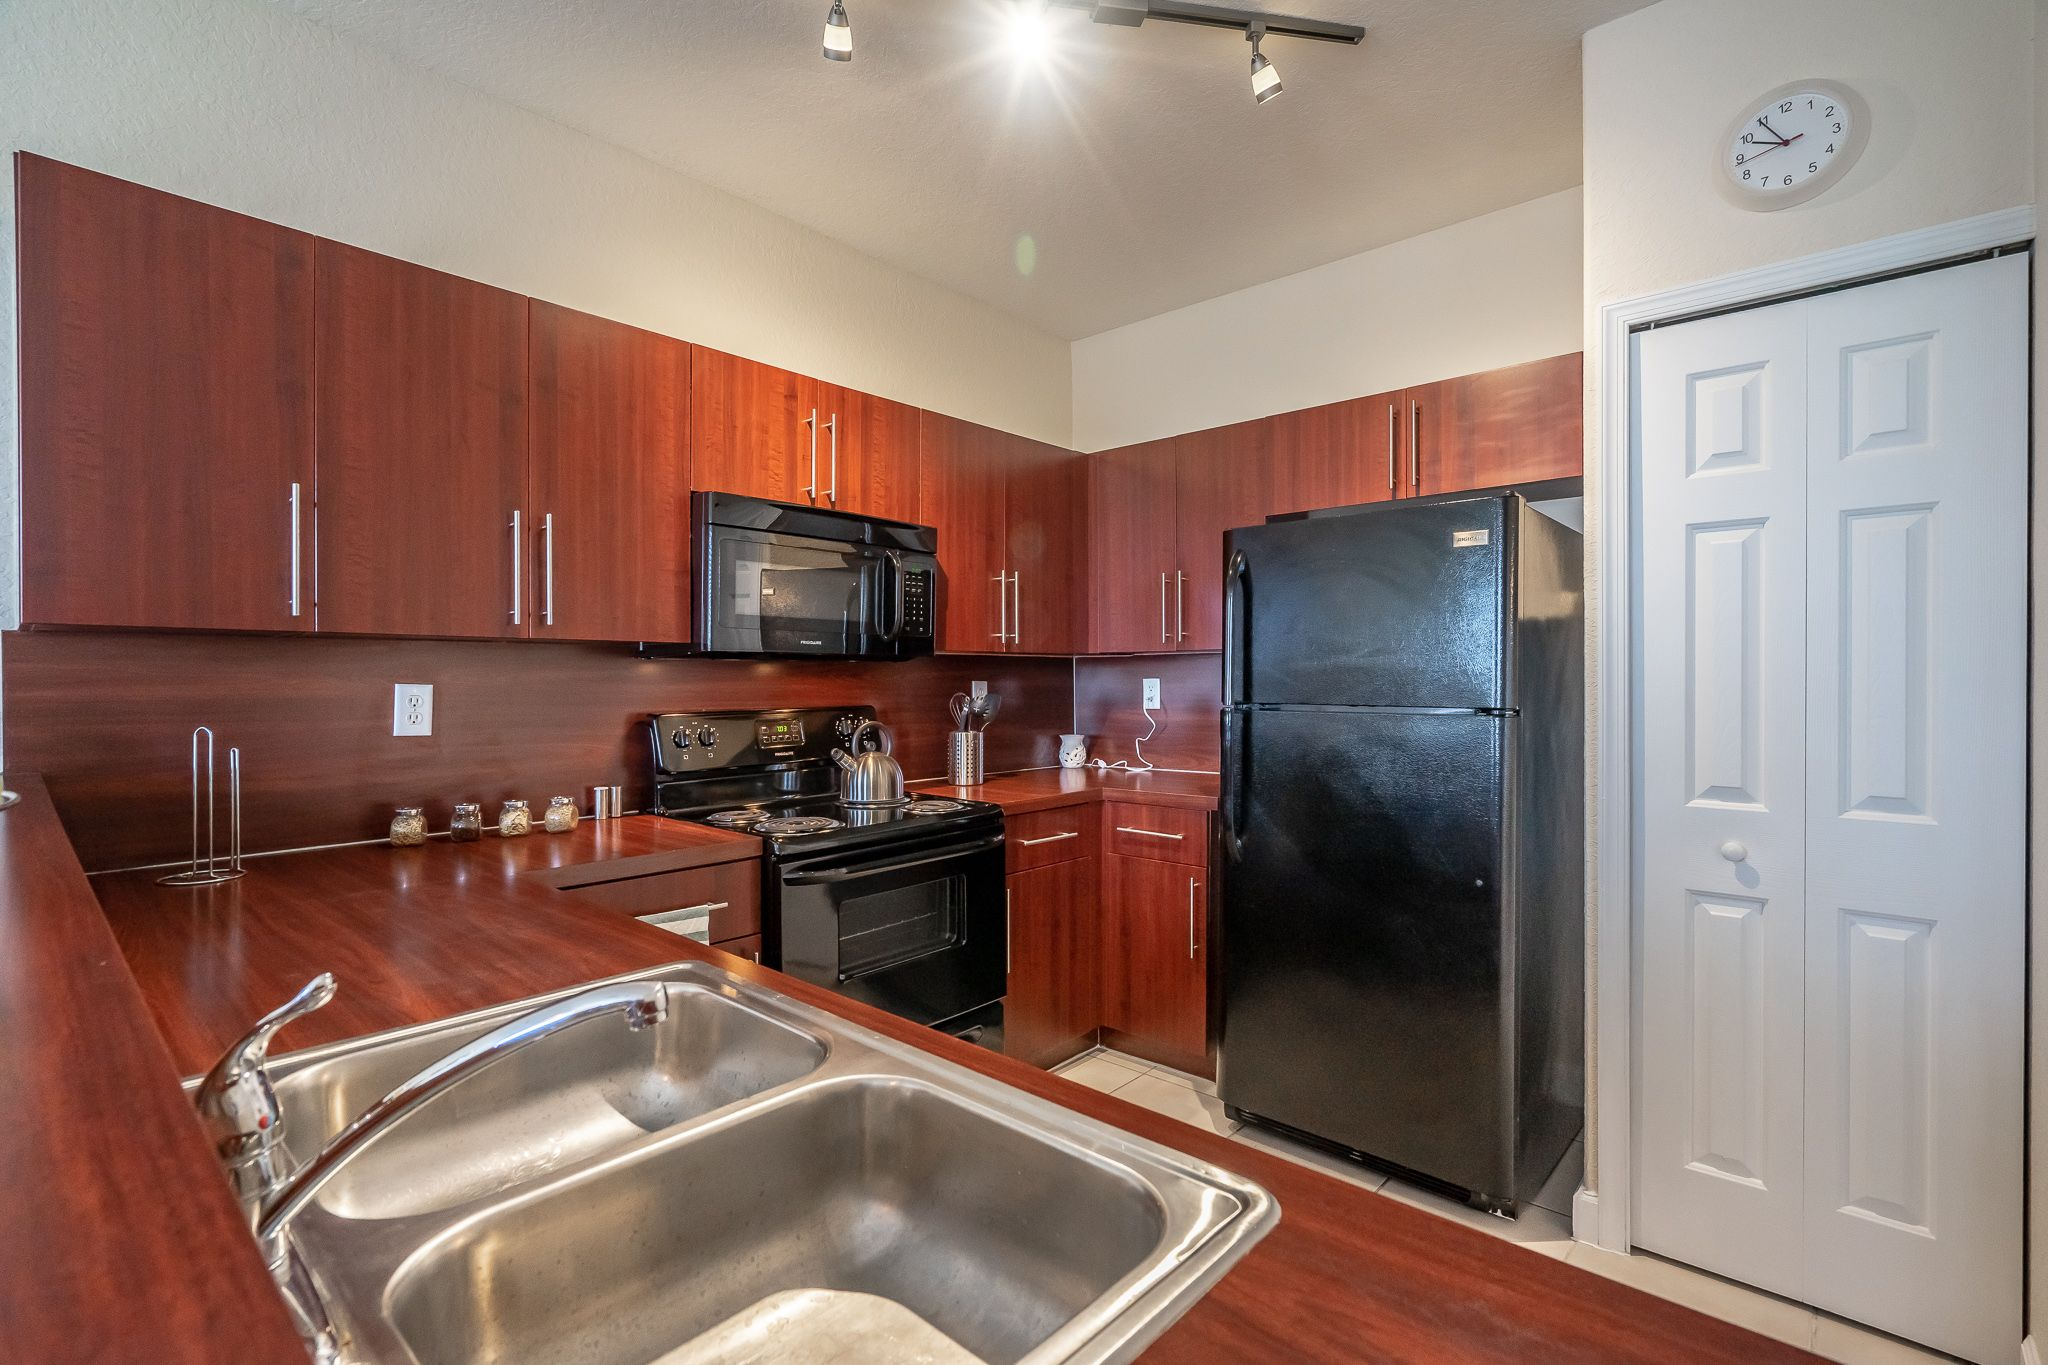 Apartment kitchen with black appliances and dark cabinetry